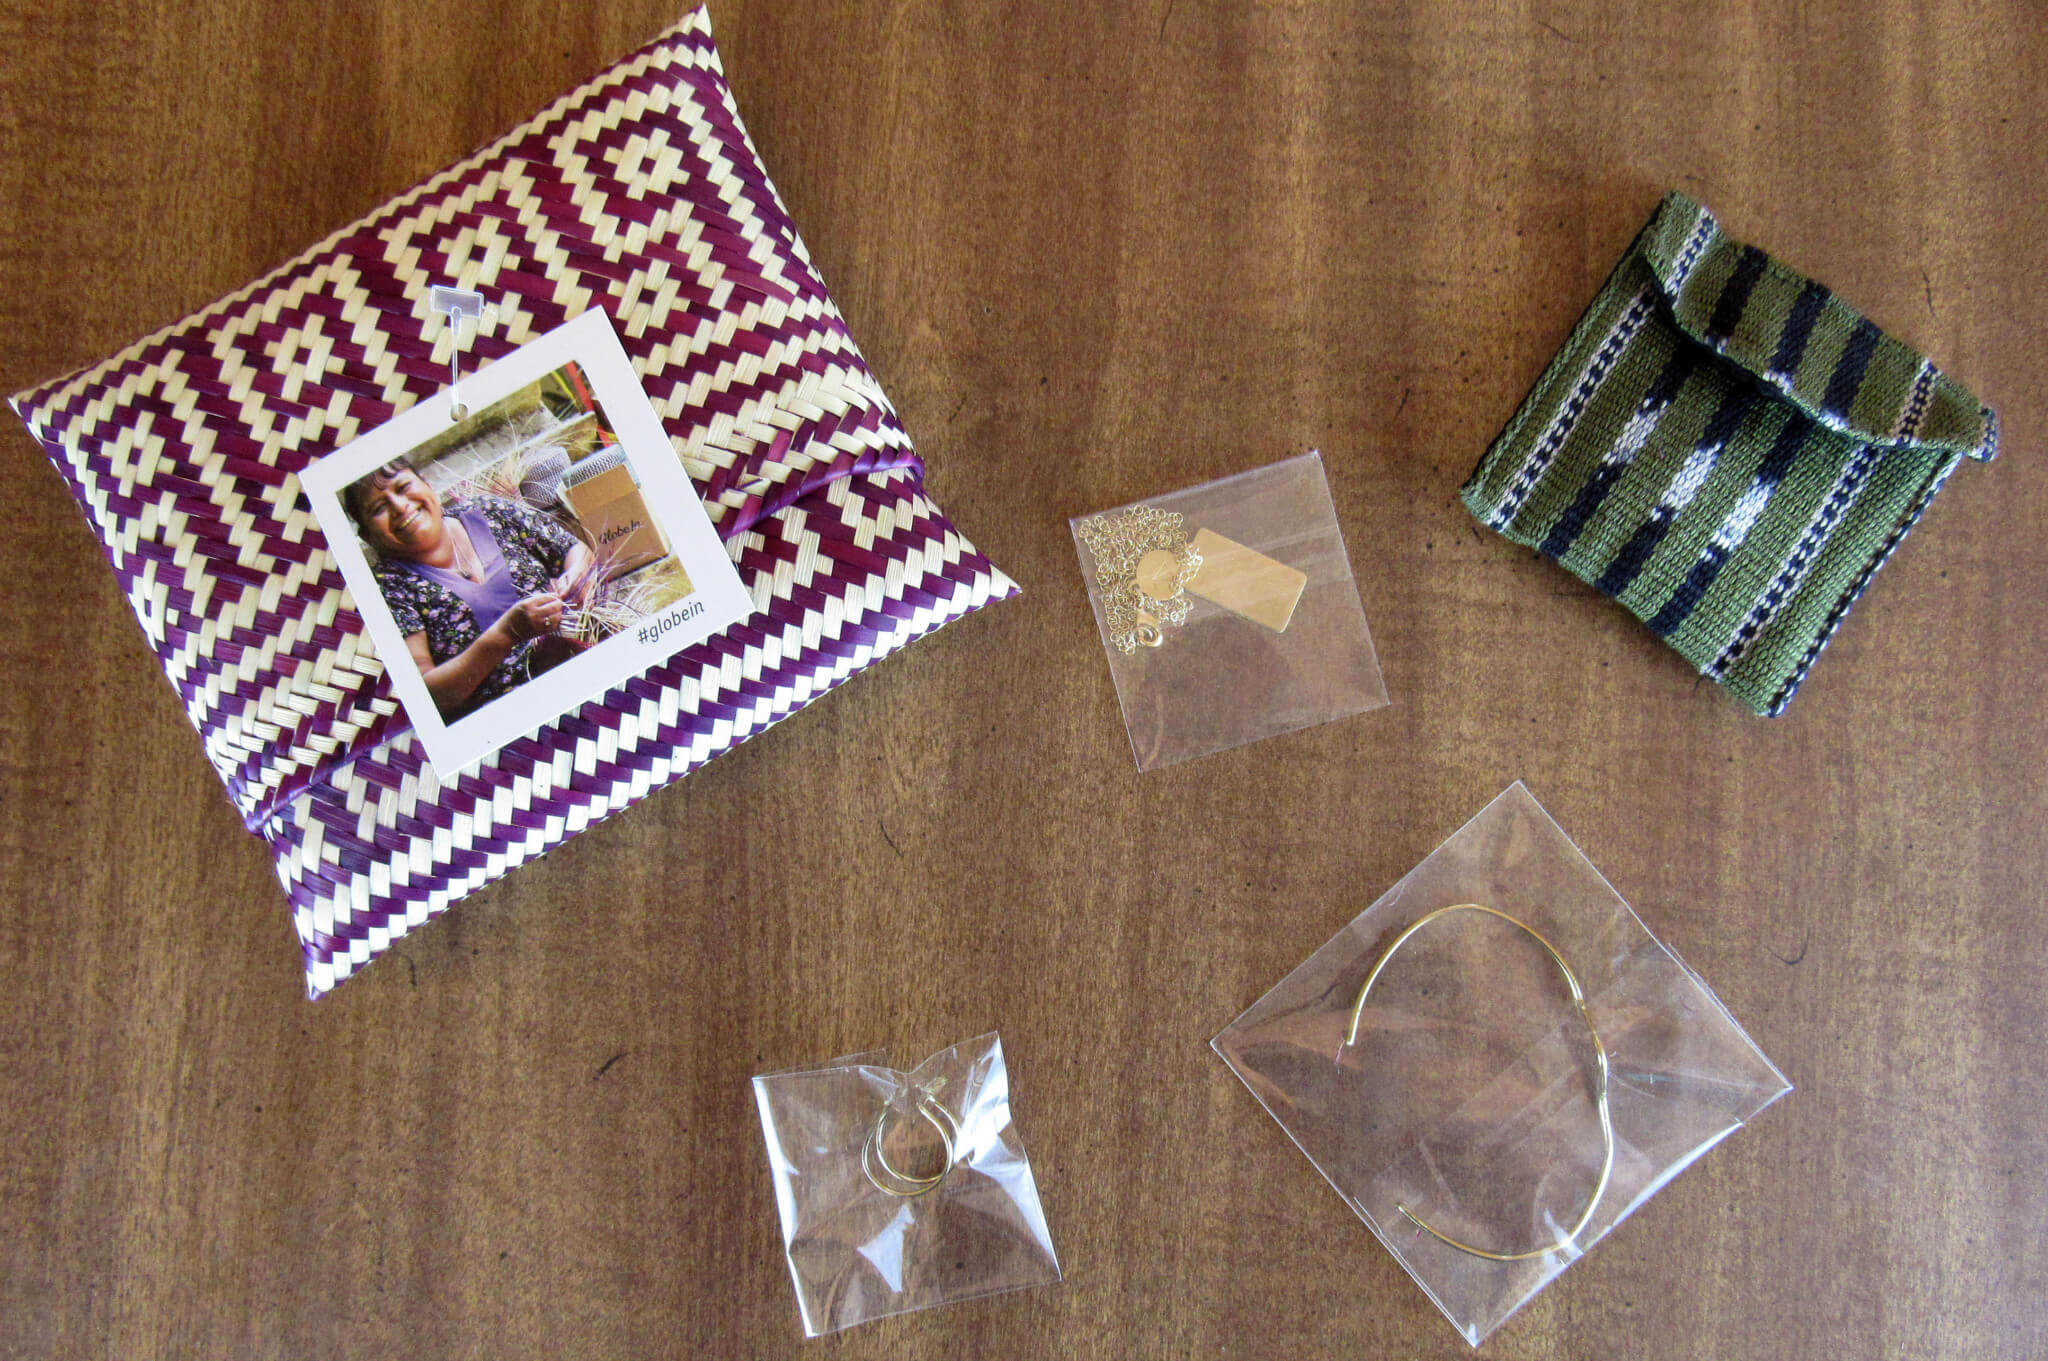 Items packaged